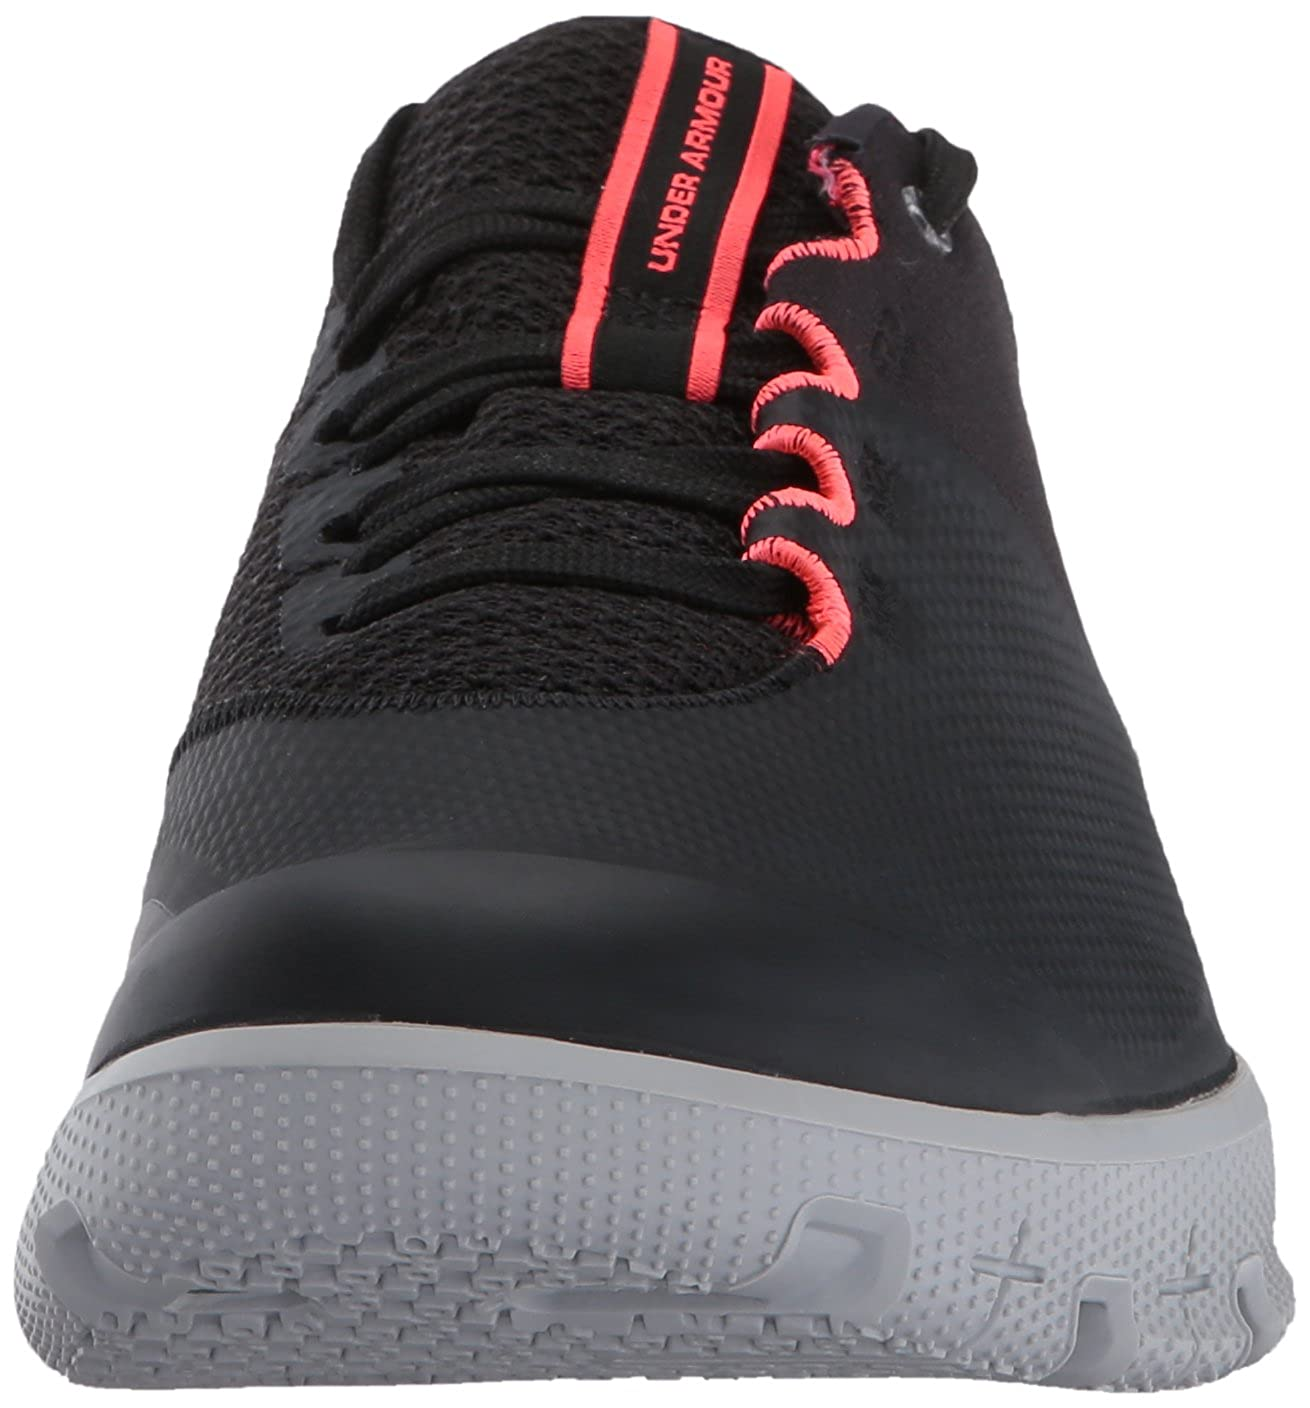 Under Armour Charged Ultimate TR 2.0 Training Schuh Schuh Schuh 982c46